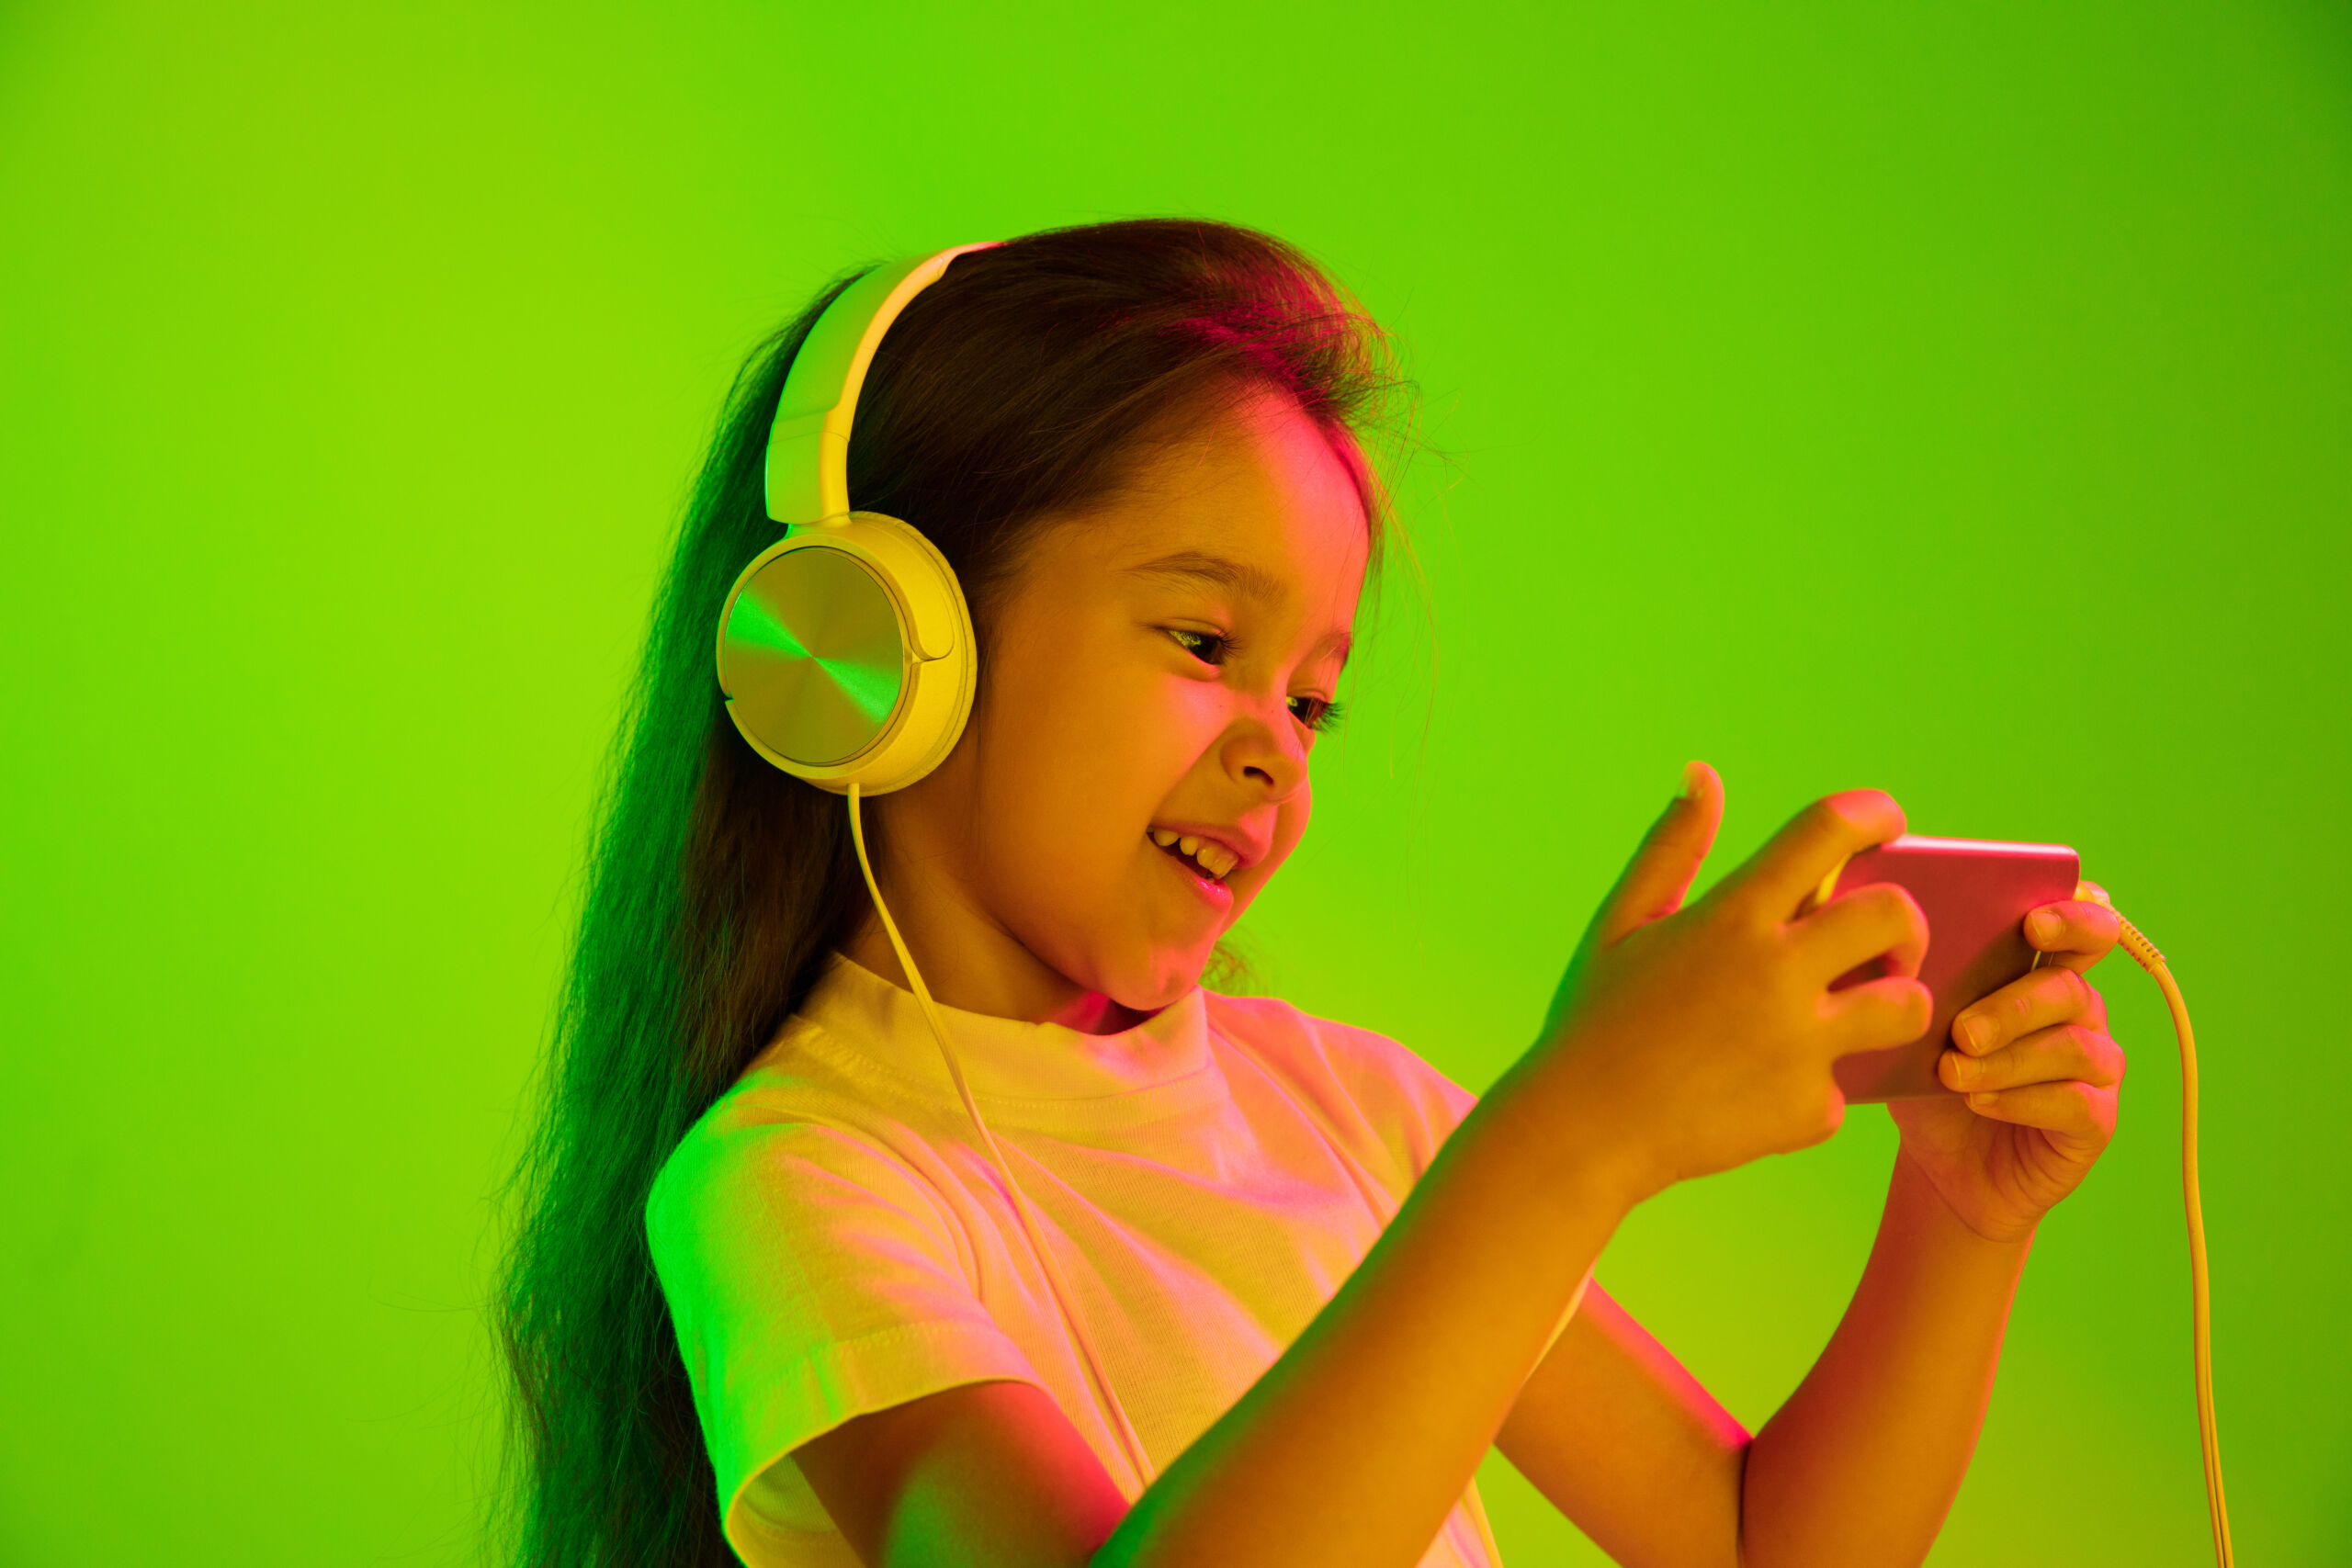 beautiful female half length portrait isolated on green wall in neon light young emotional girl human emotions facial expression concept using smartphone for vlog selfie chating gaming scaled